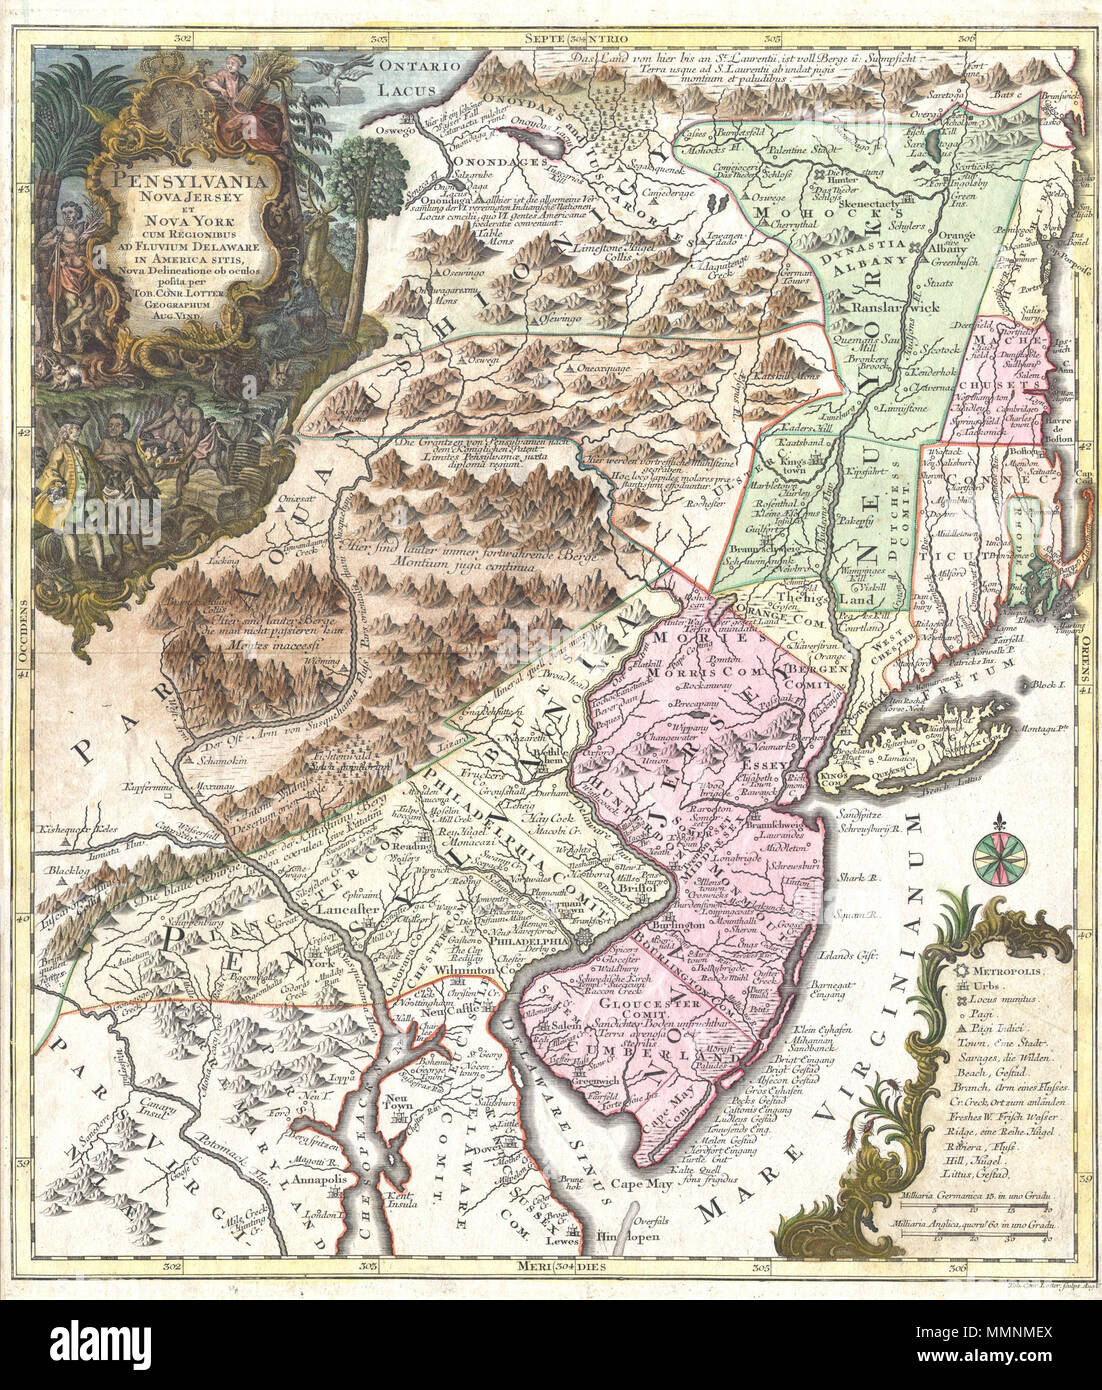 English a fine and rare 1756 example of tobias conrad lotters a fine and rare 1756 example of tobias conrad lotters important map of the middle atlantic and new england regions during the british colonial period thecheapjerseys Gallery